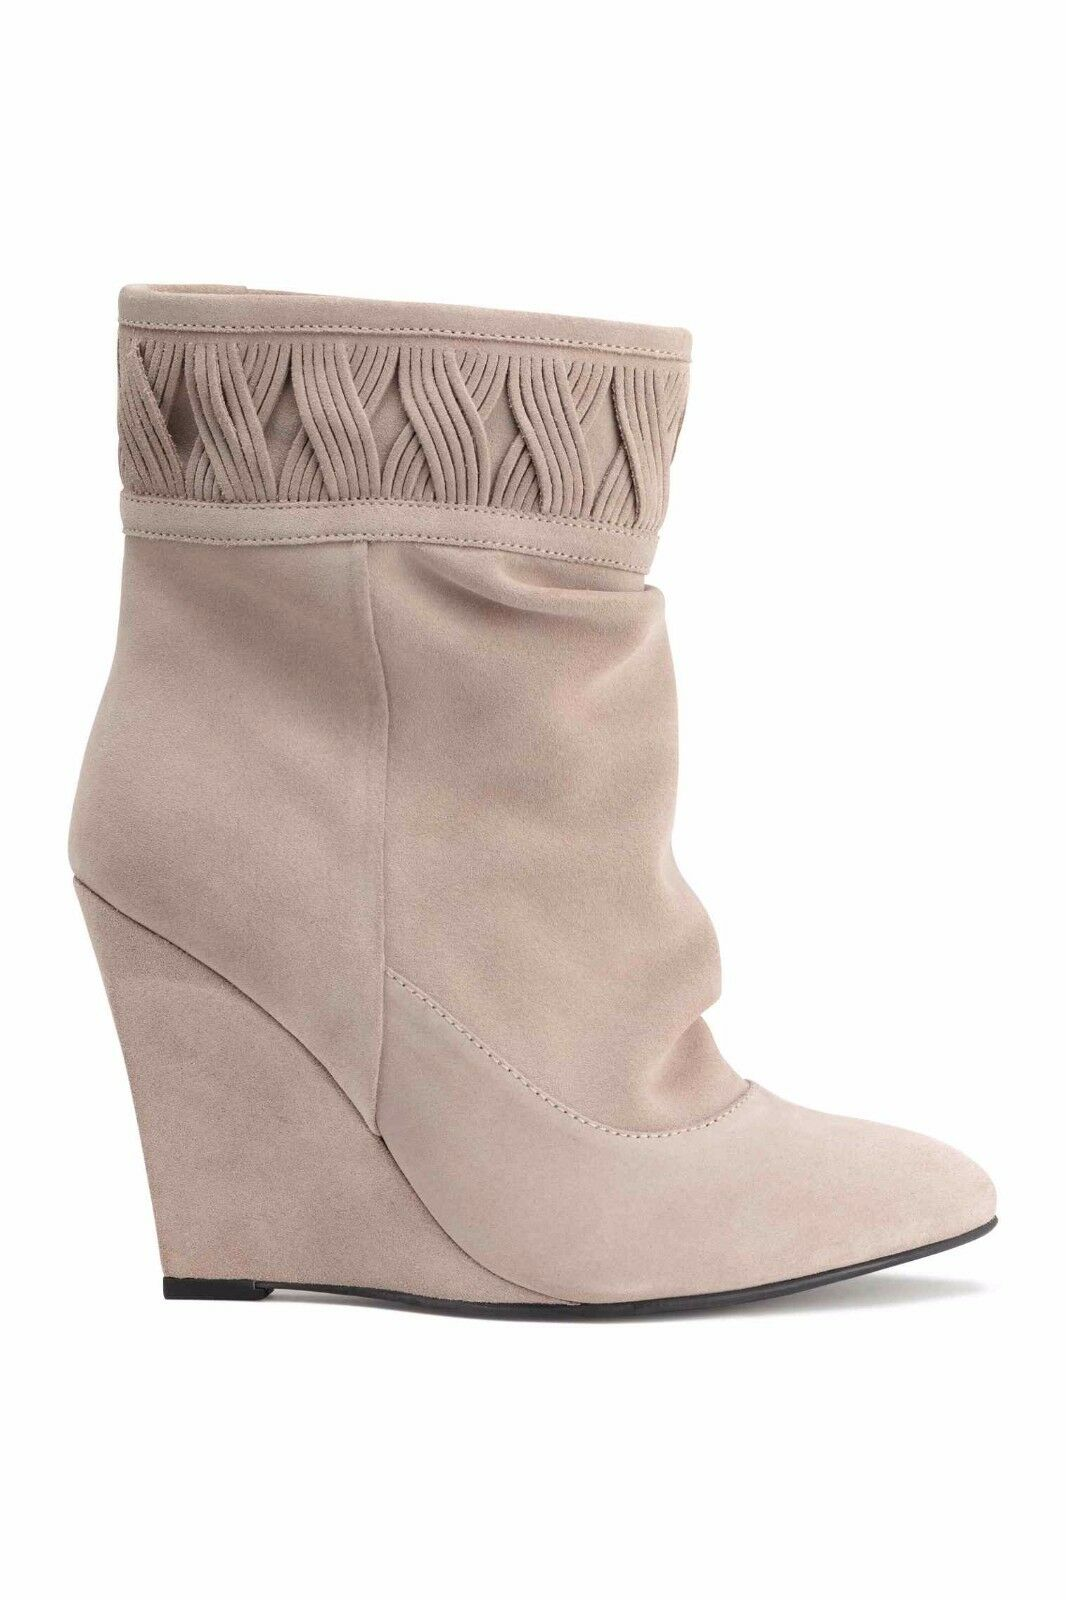 H&M LIGHT BEIGE REAL 100% SUEDE WEDGE HEELDED ANKLE BOOTS Schuhe UK 6.5 EU40 BNWT